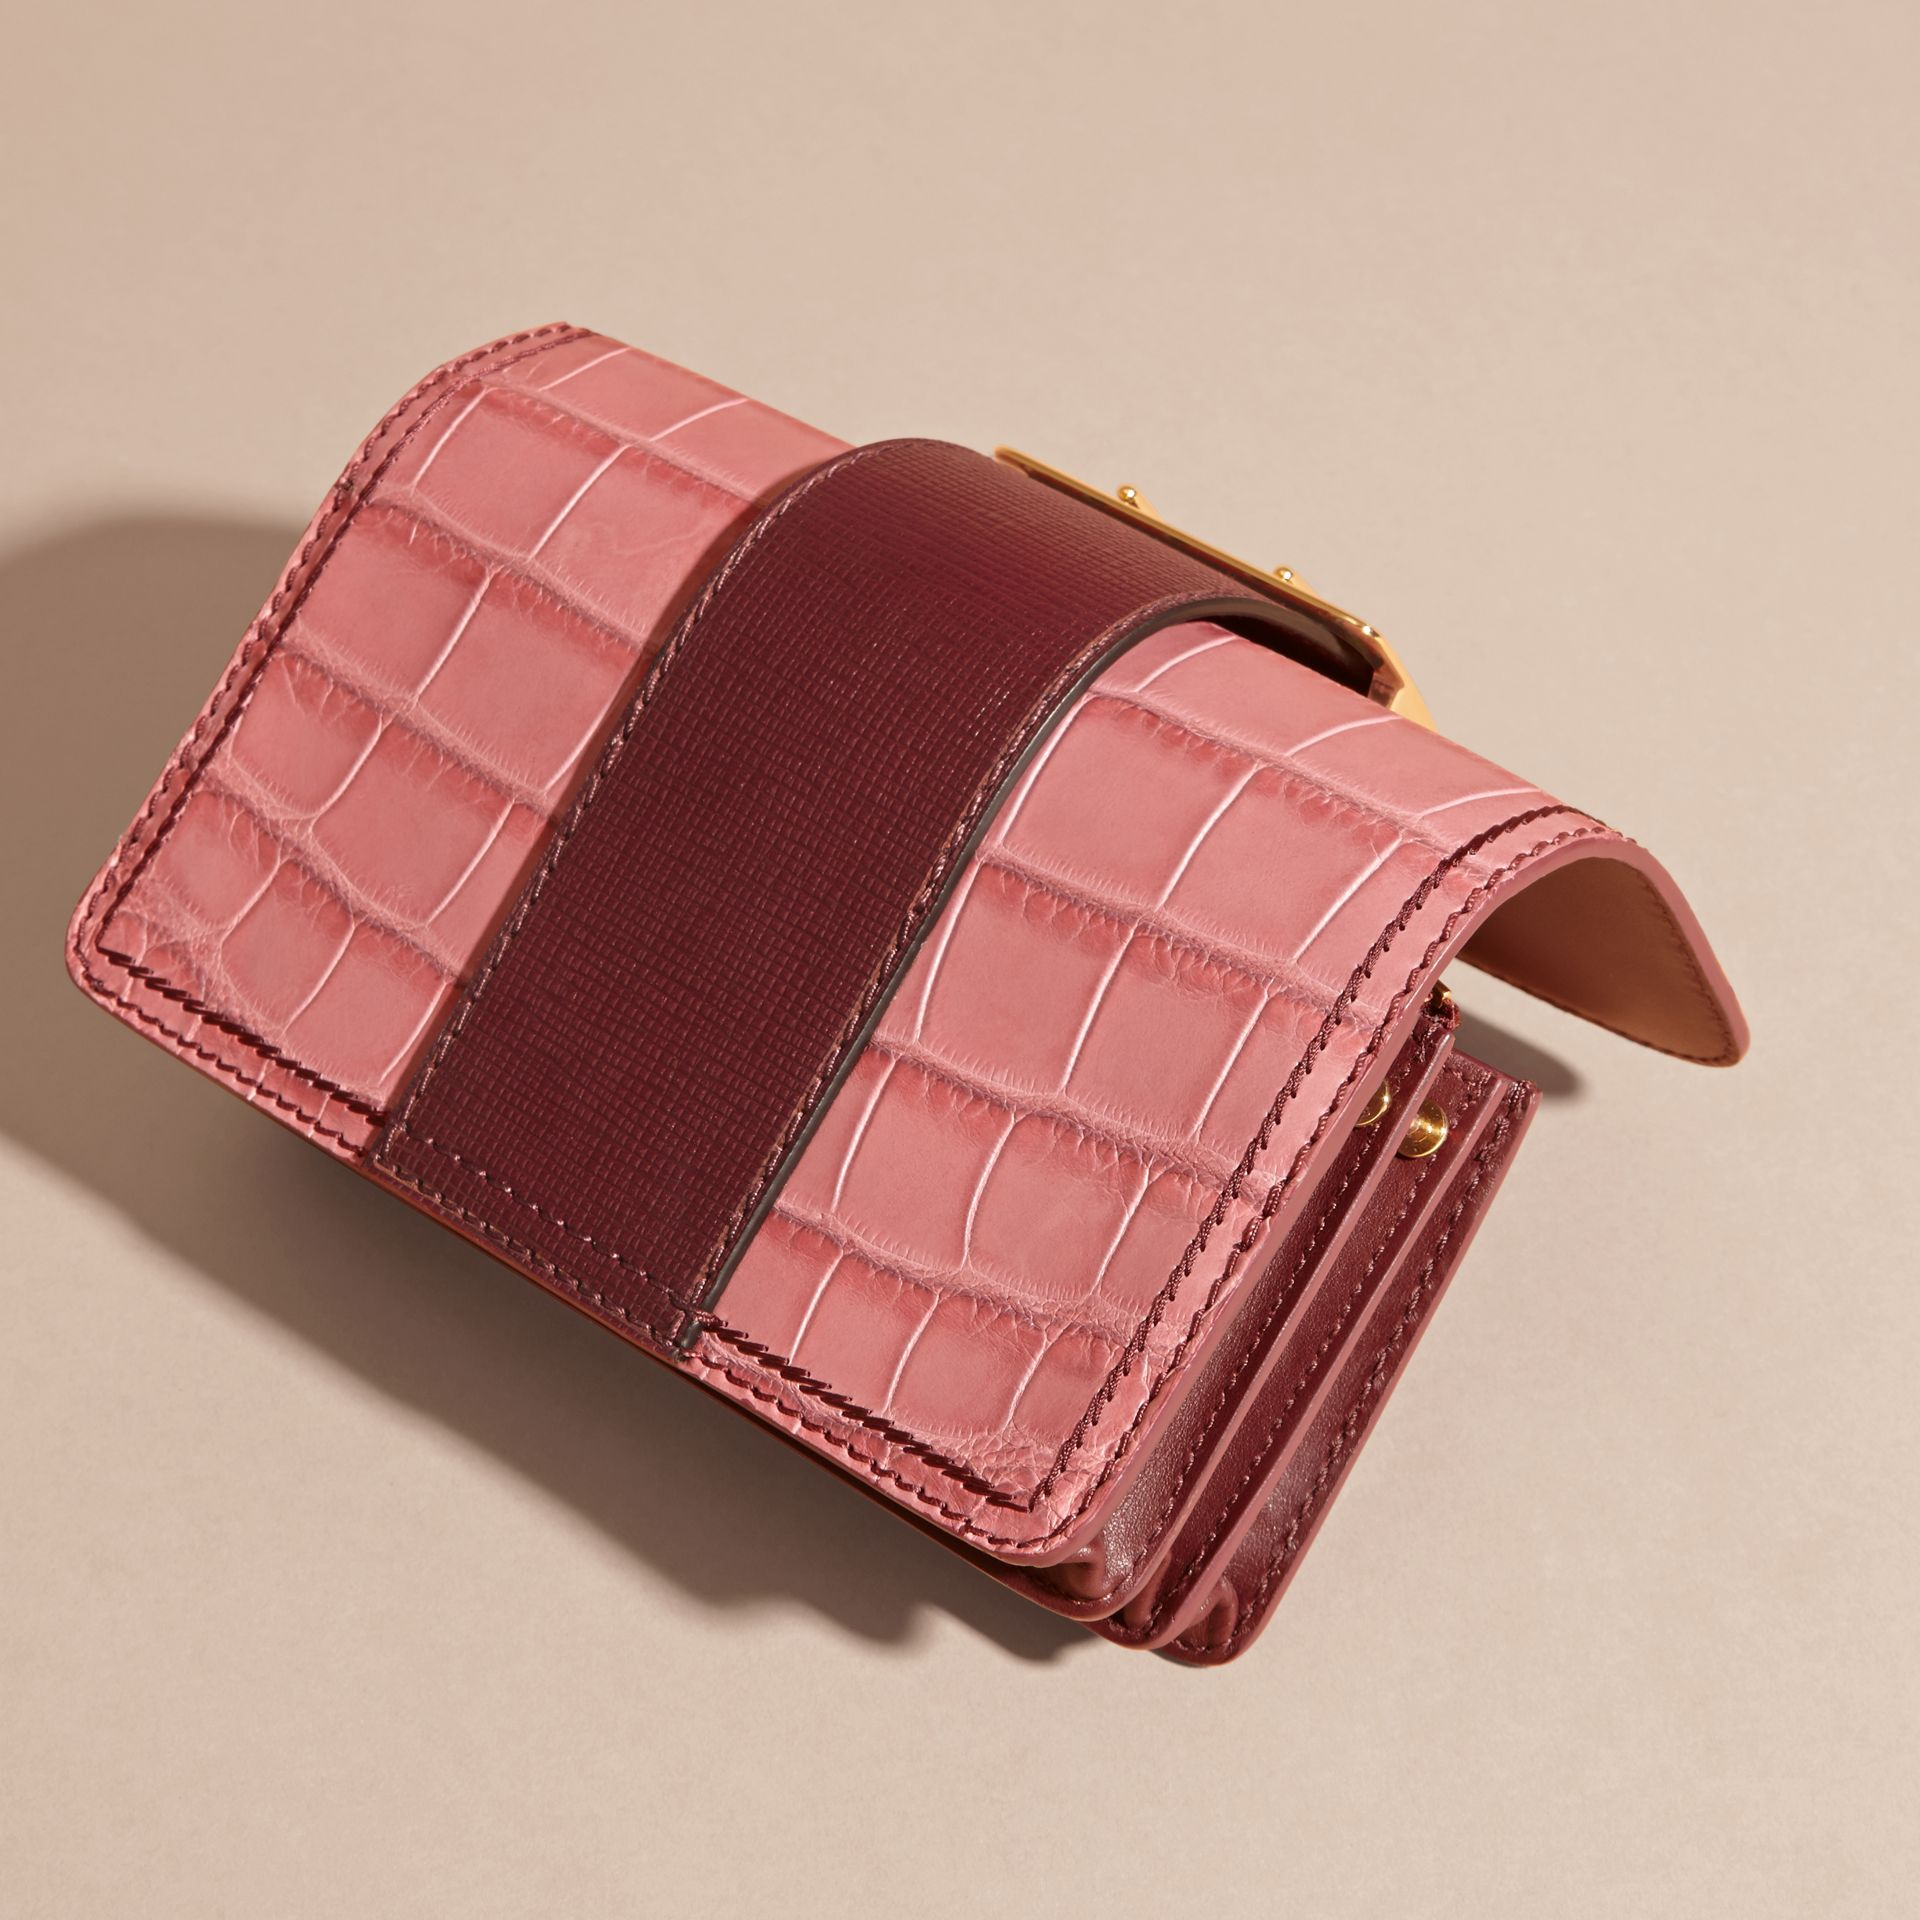 The Small Buckle Bag in Alligator and Leather in Dusky Pink/ Burgundy - Women | Burberry United States - gallery image 7